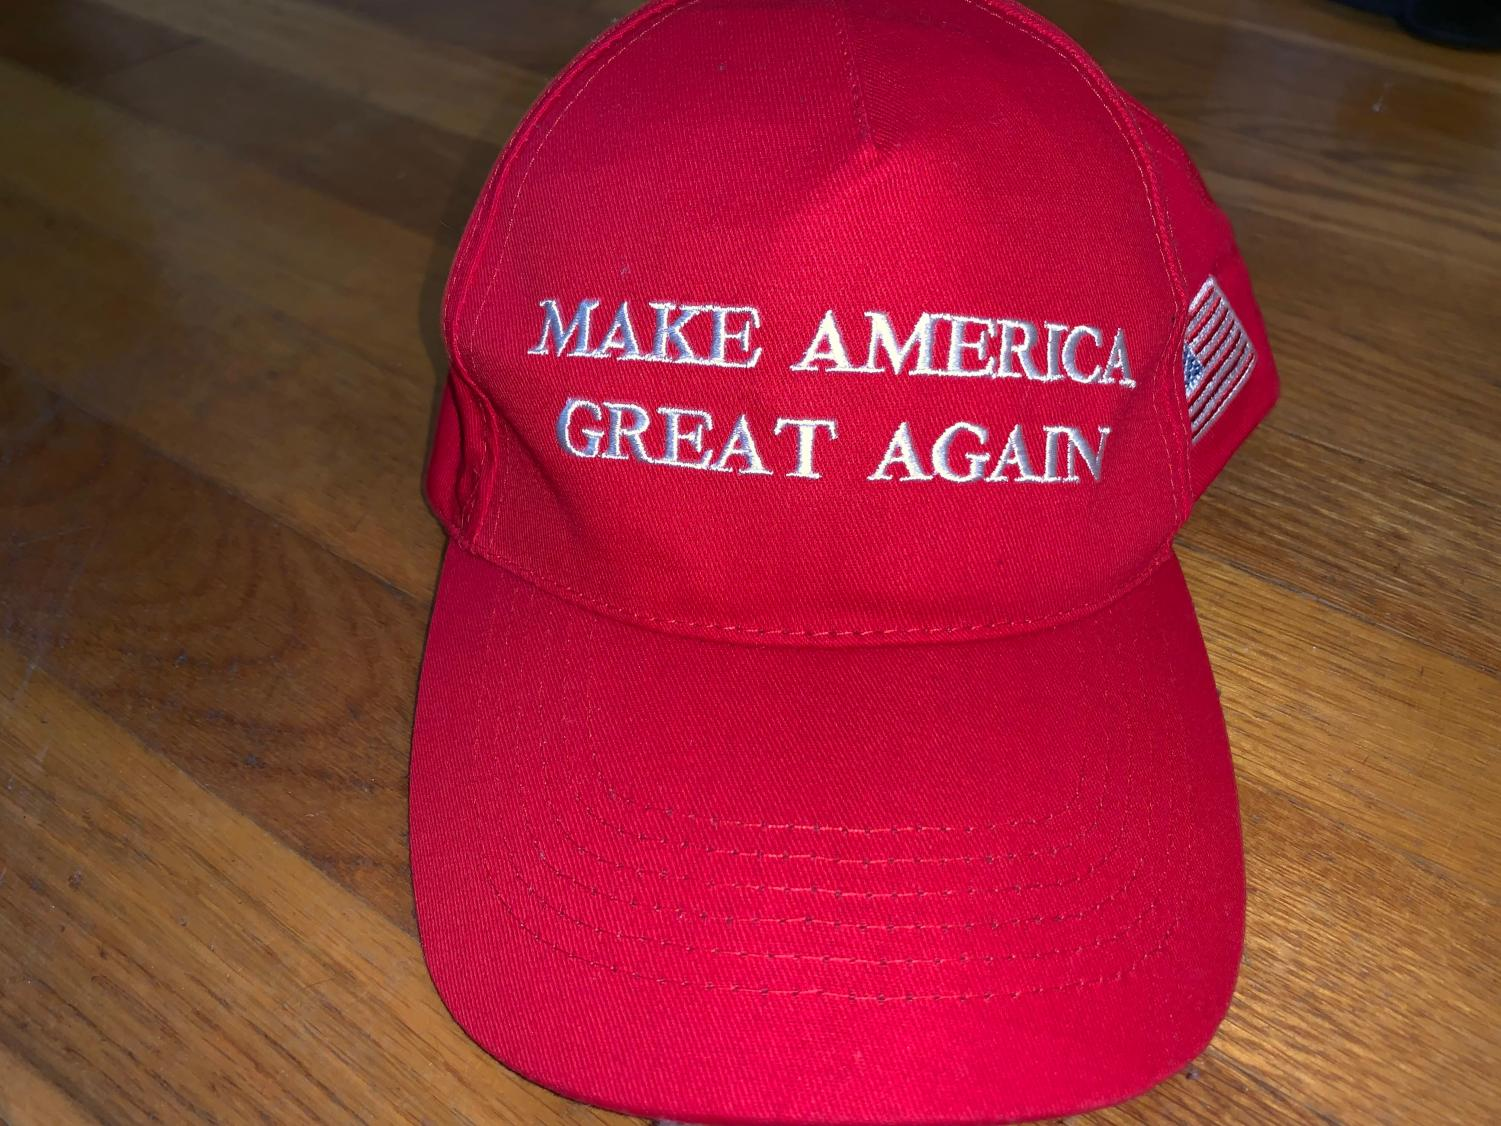 Make America Great Again hat is worn by many Trump supporters.